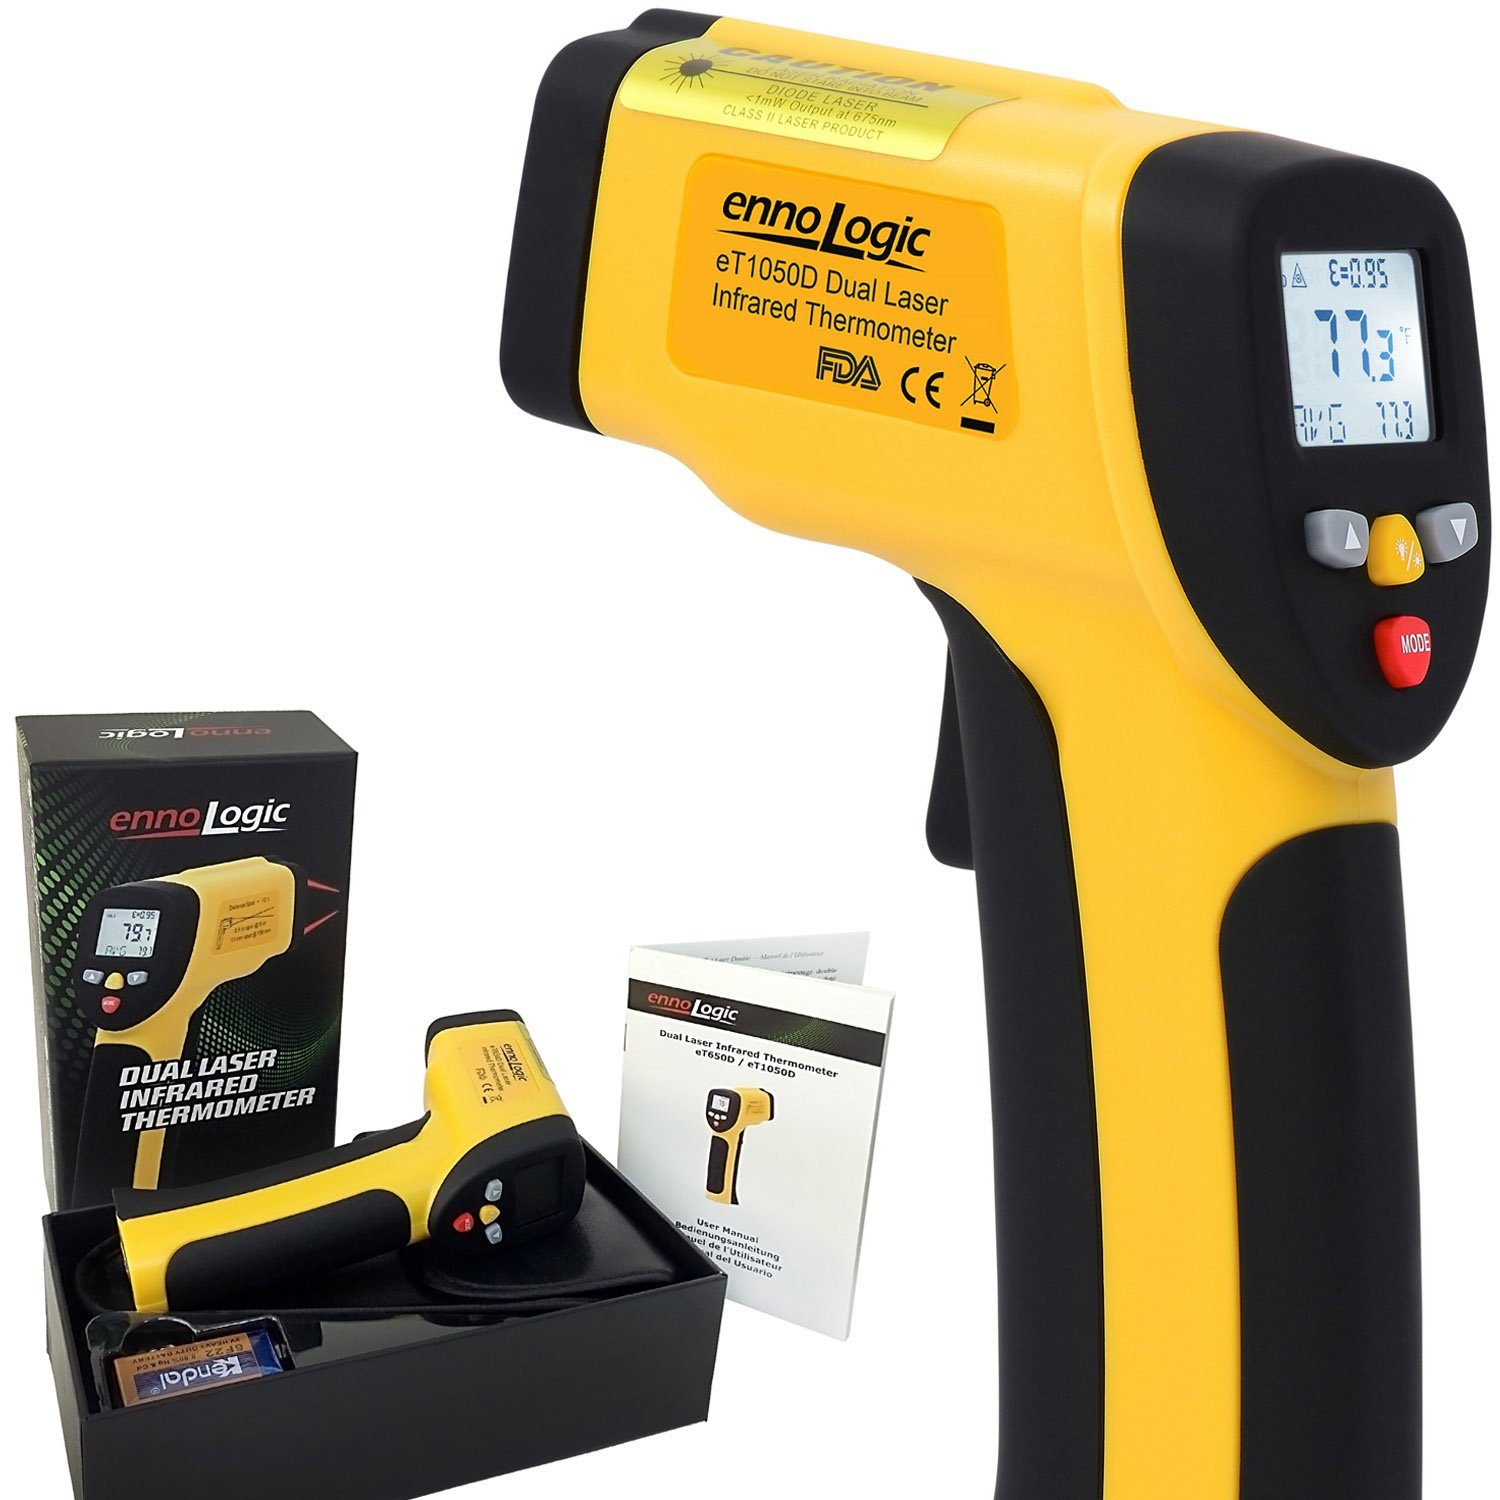 Temperature Gun by ennoLogic - Accurate High Temperature Dual Laser Infrared Thermometer -58°F to 1922°F - Digital Surface IR Thermometer eT1050D Cascadia Innovations